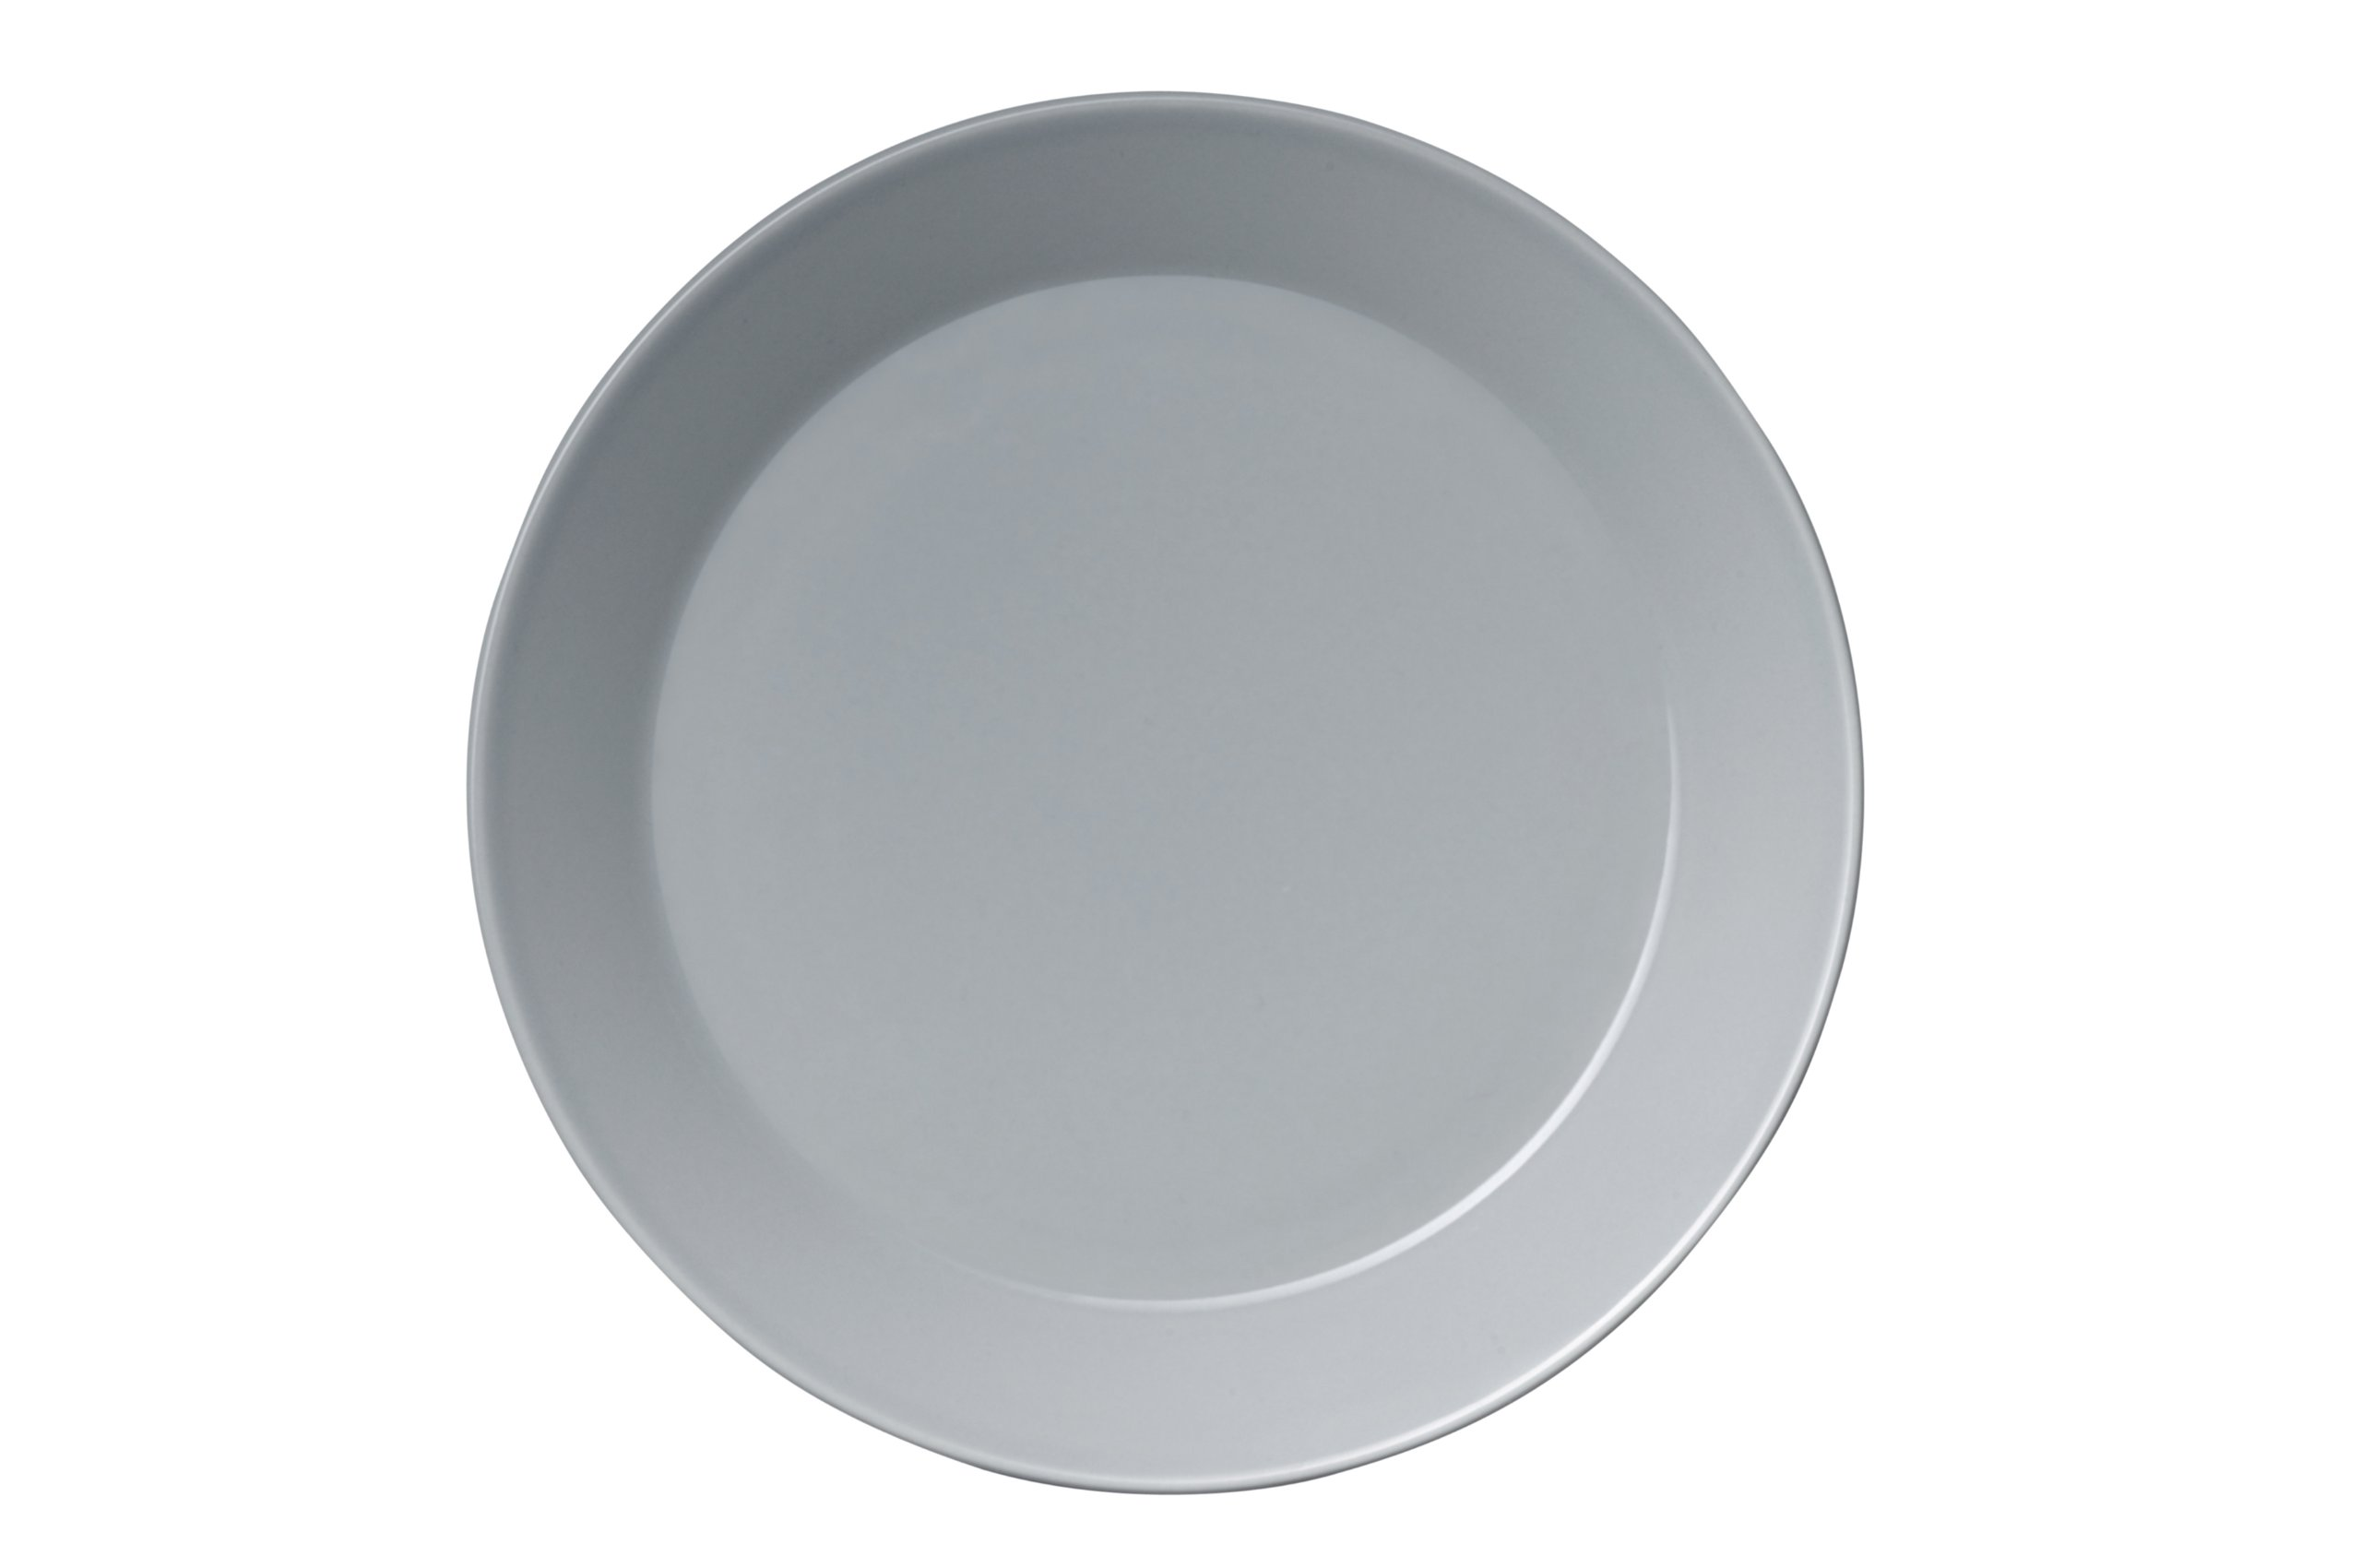 Iittala Teema 6-3/4-Inch Bread and Butter Plate, Pearl Gray